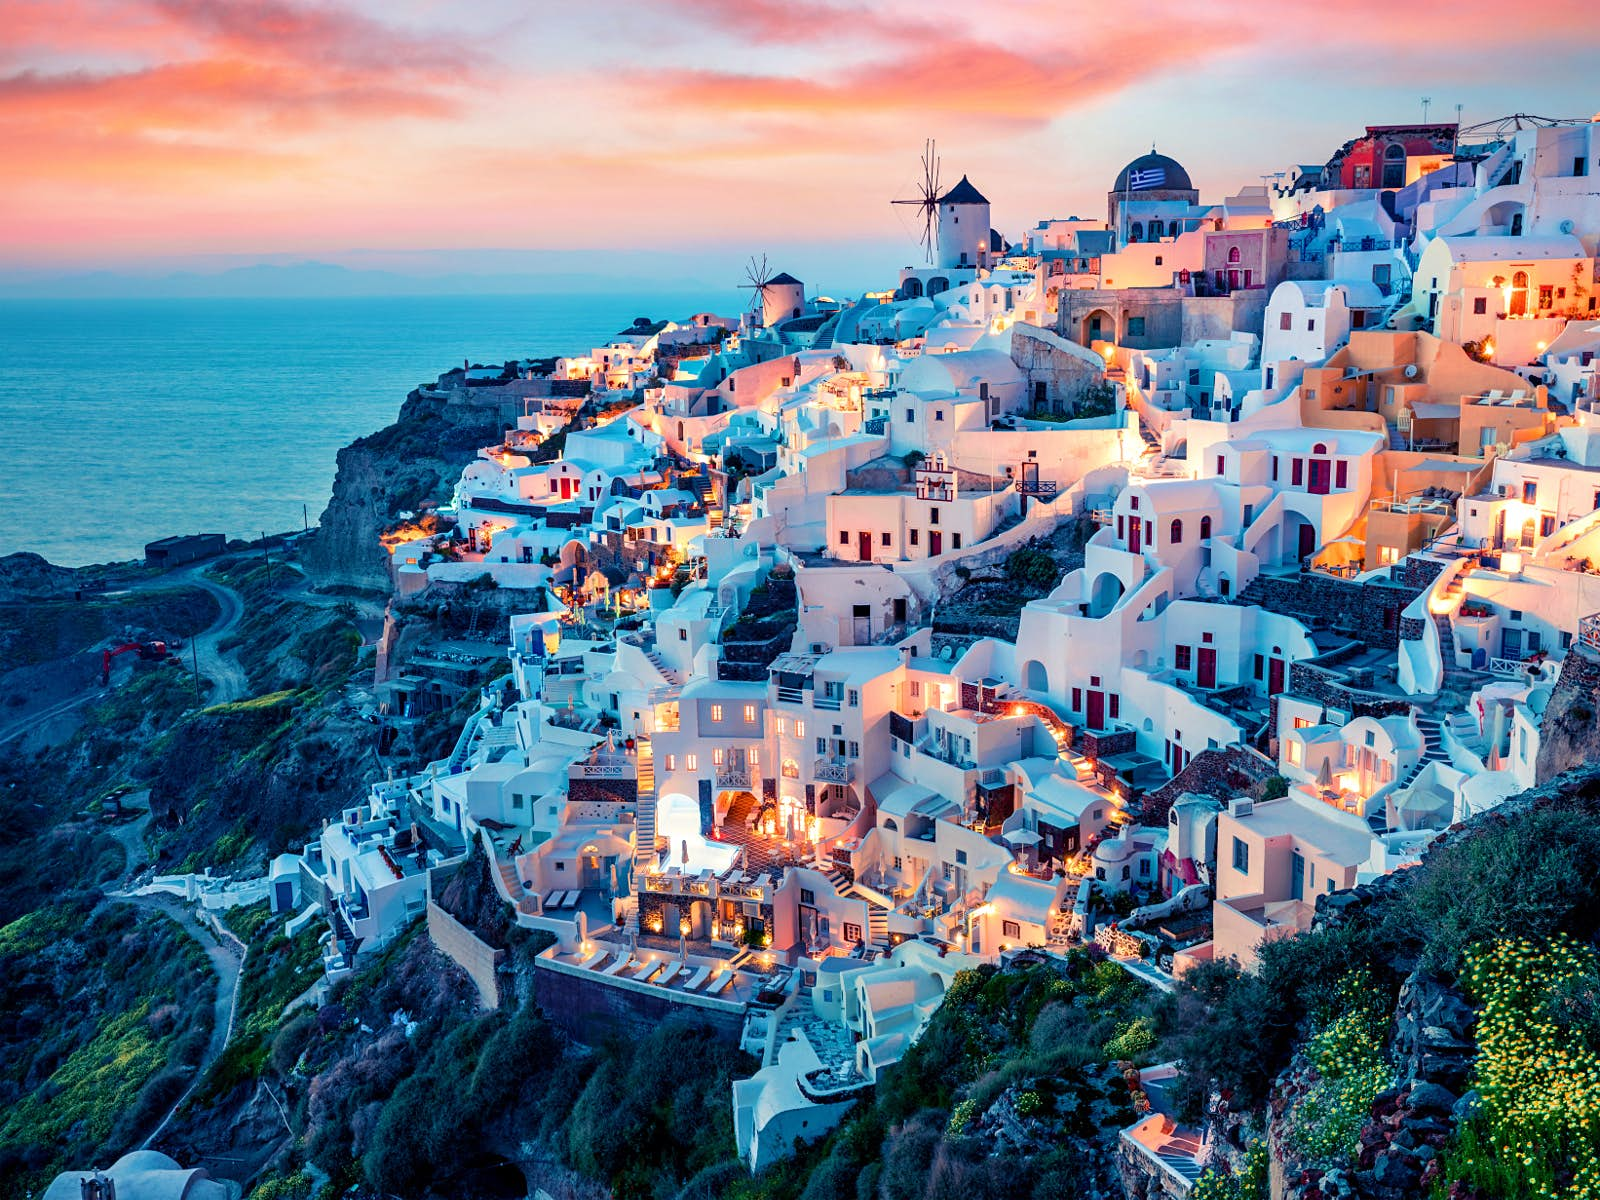 Sunset over the white hillside buildings of village of Oia.